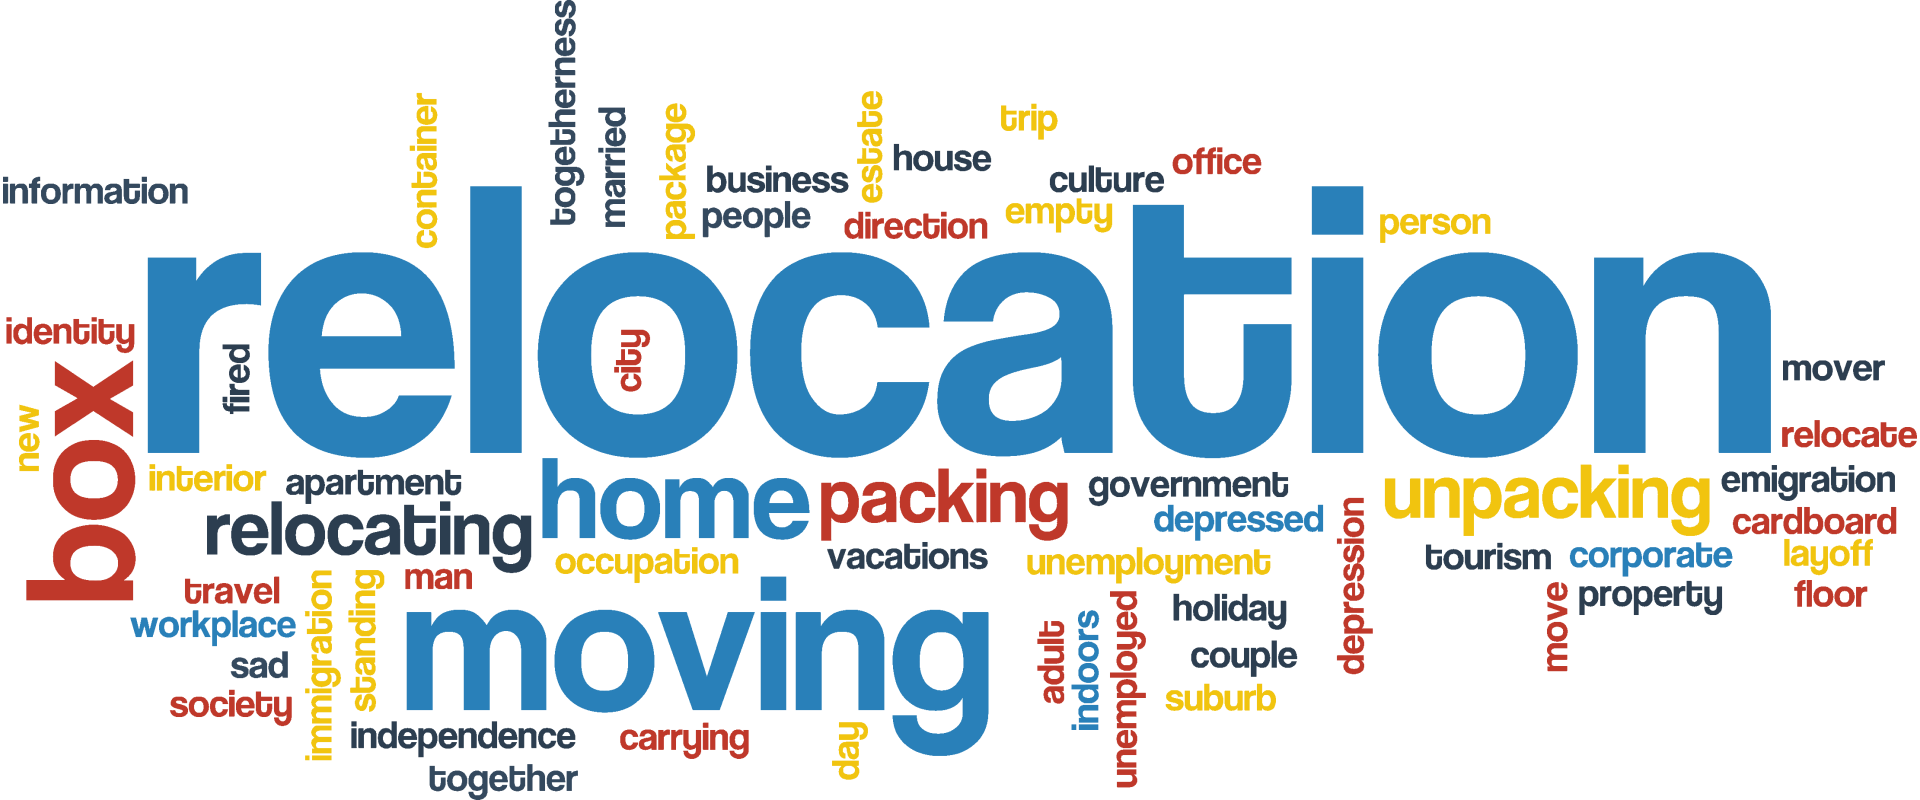 relocation-words1